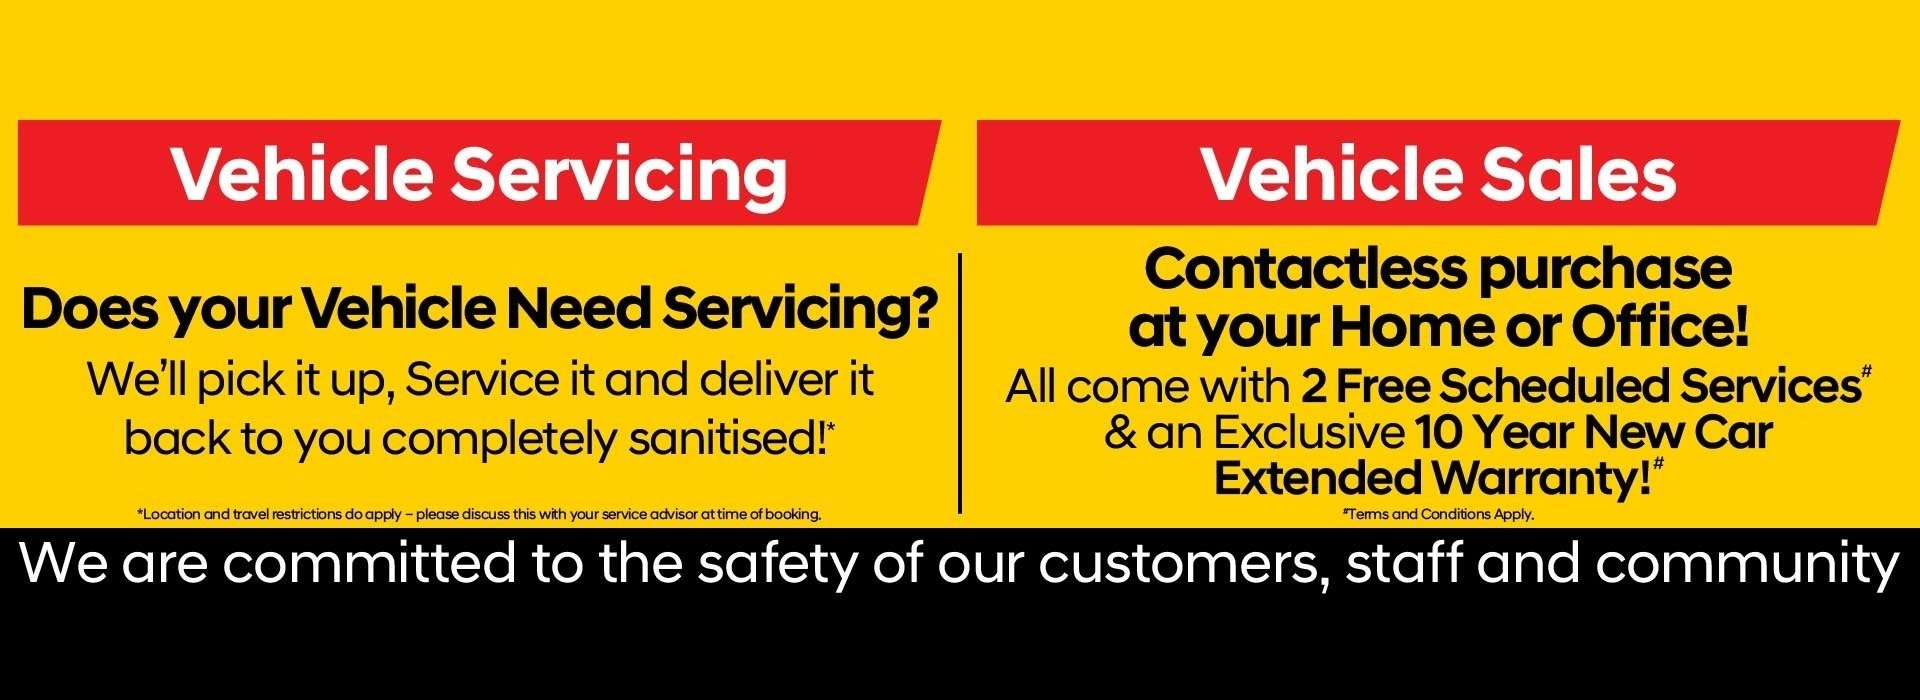 Contactless Sales & Service banner